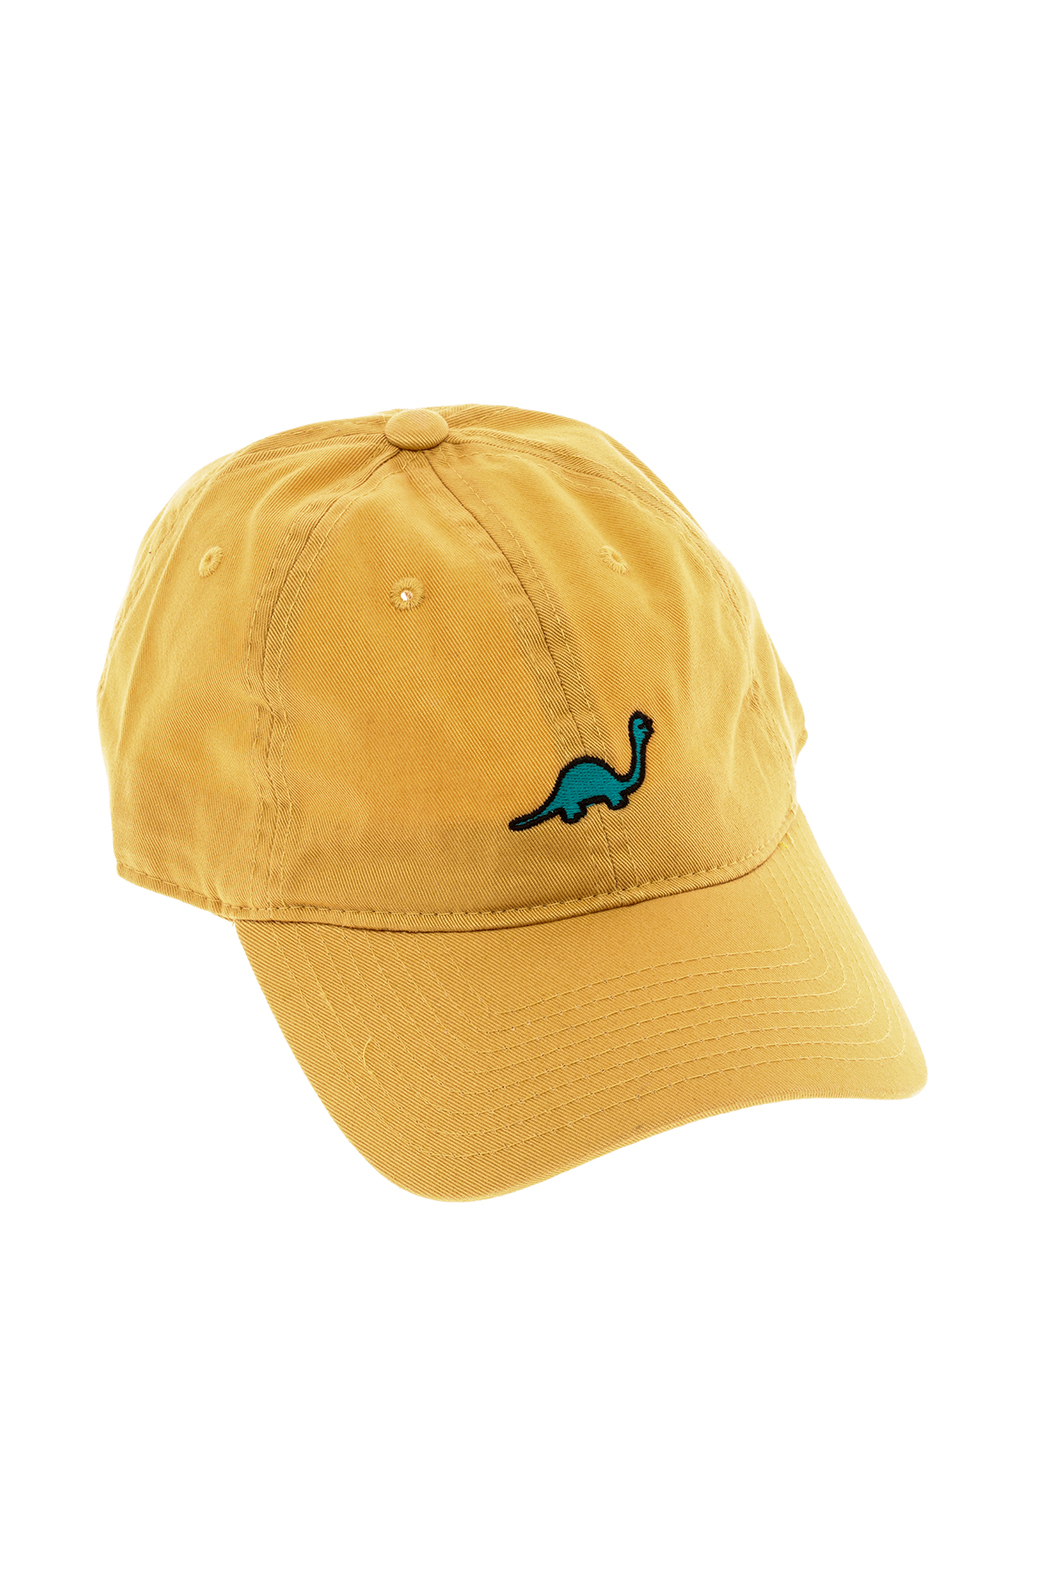 fd6a411be94 Gravity LA Dino Dad Baseball Hat from California — Shoptiques